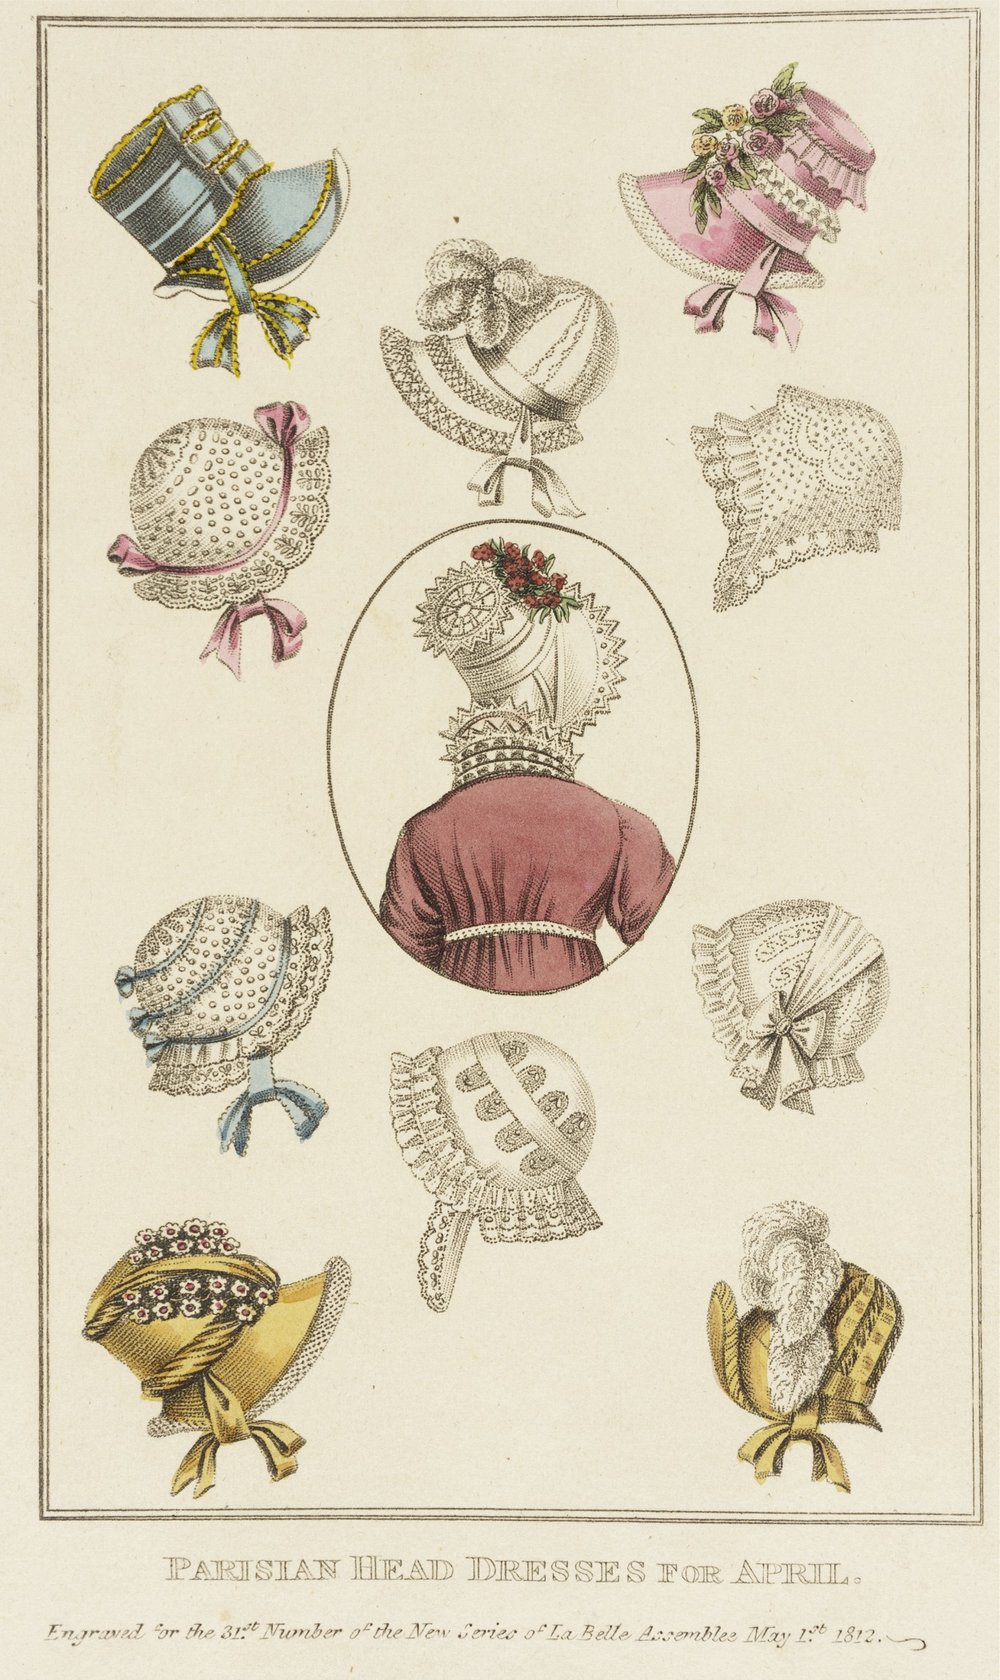 Fashion plate from remarkable women's magazine  La Belle Assemblée,  which was published from 1806 to 1837. Discussed in Episode 1.4, 'Unsex'd females'. Alongside fashion plates, it published   original poetry and fiction, non-fiction articles on politics and science, book and theatre reviews, and serialised novels.